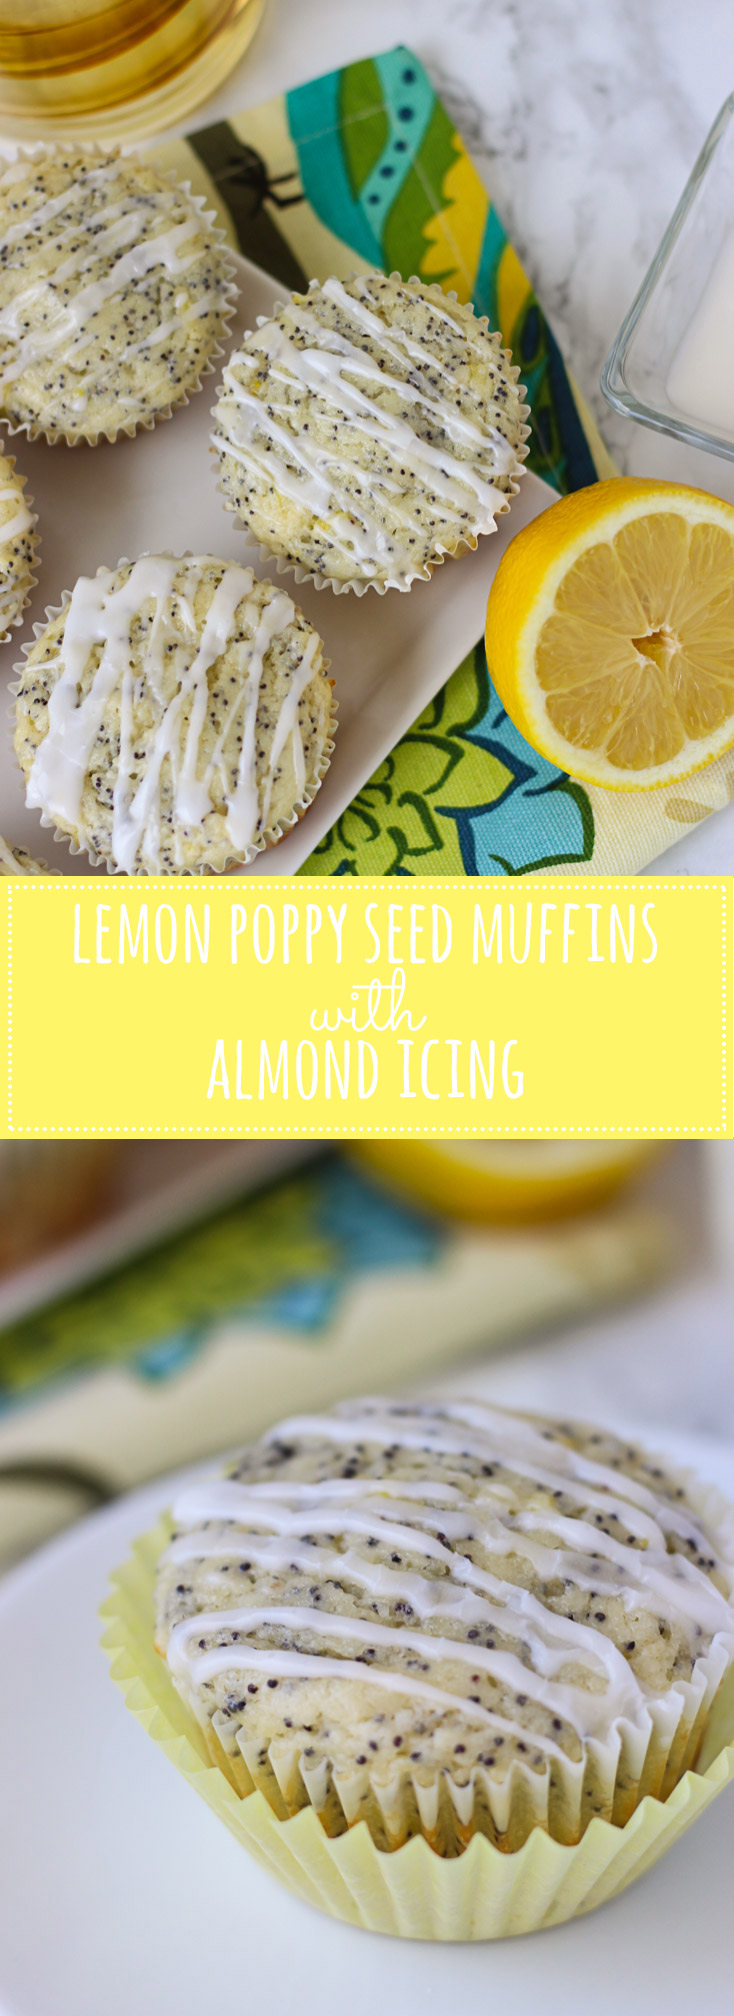 Lemon Poppy Seed Muffins with Almond Icing - moist muffins with light lemon flavor, bursting with poppy seeds, and drizzled with a sweet almond icing! They will brighten up your breakfast!